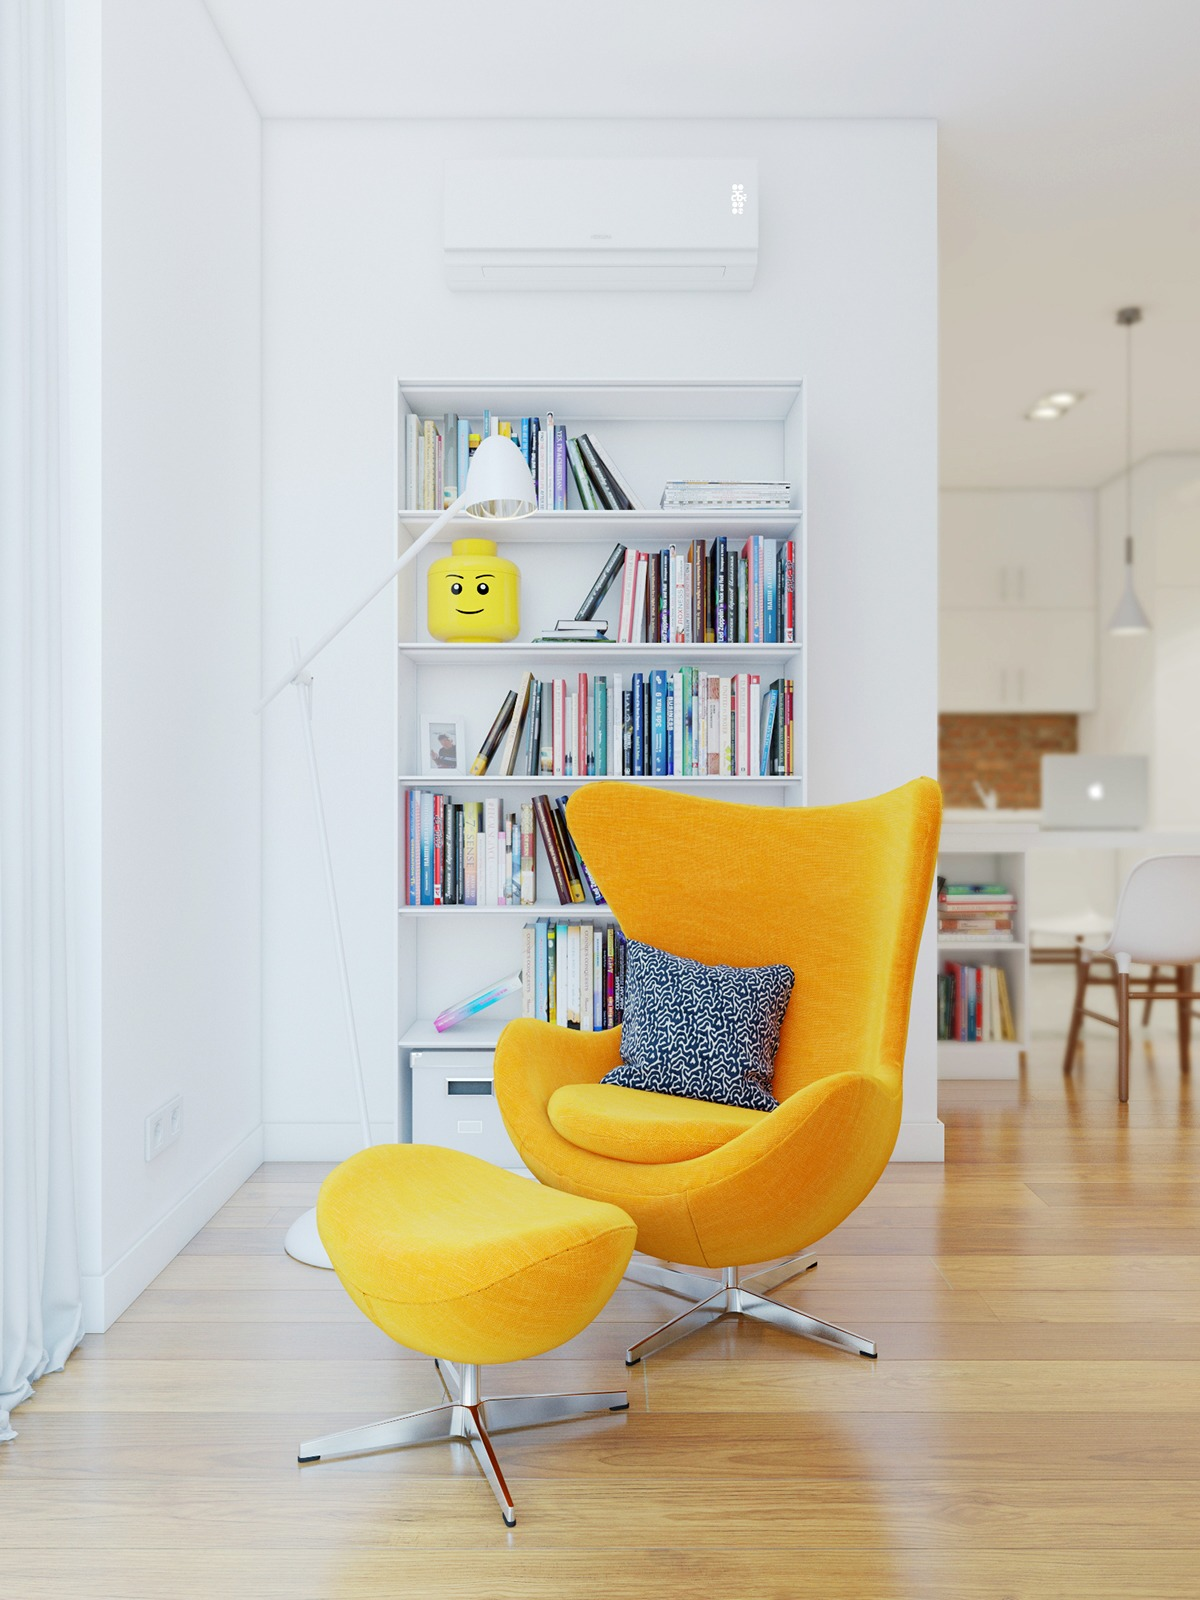 Yellow Egg Chair - 3 stunning homes with exposed brick accent walls